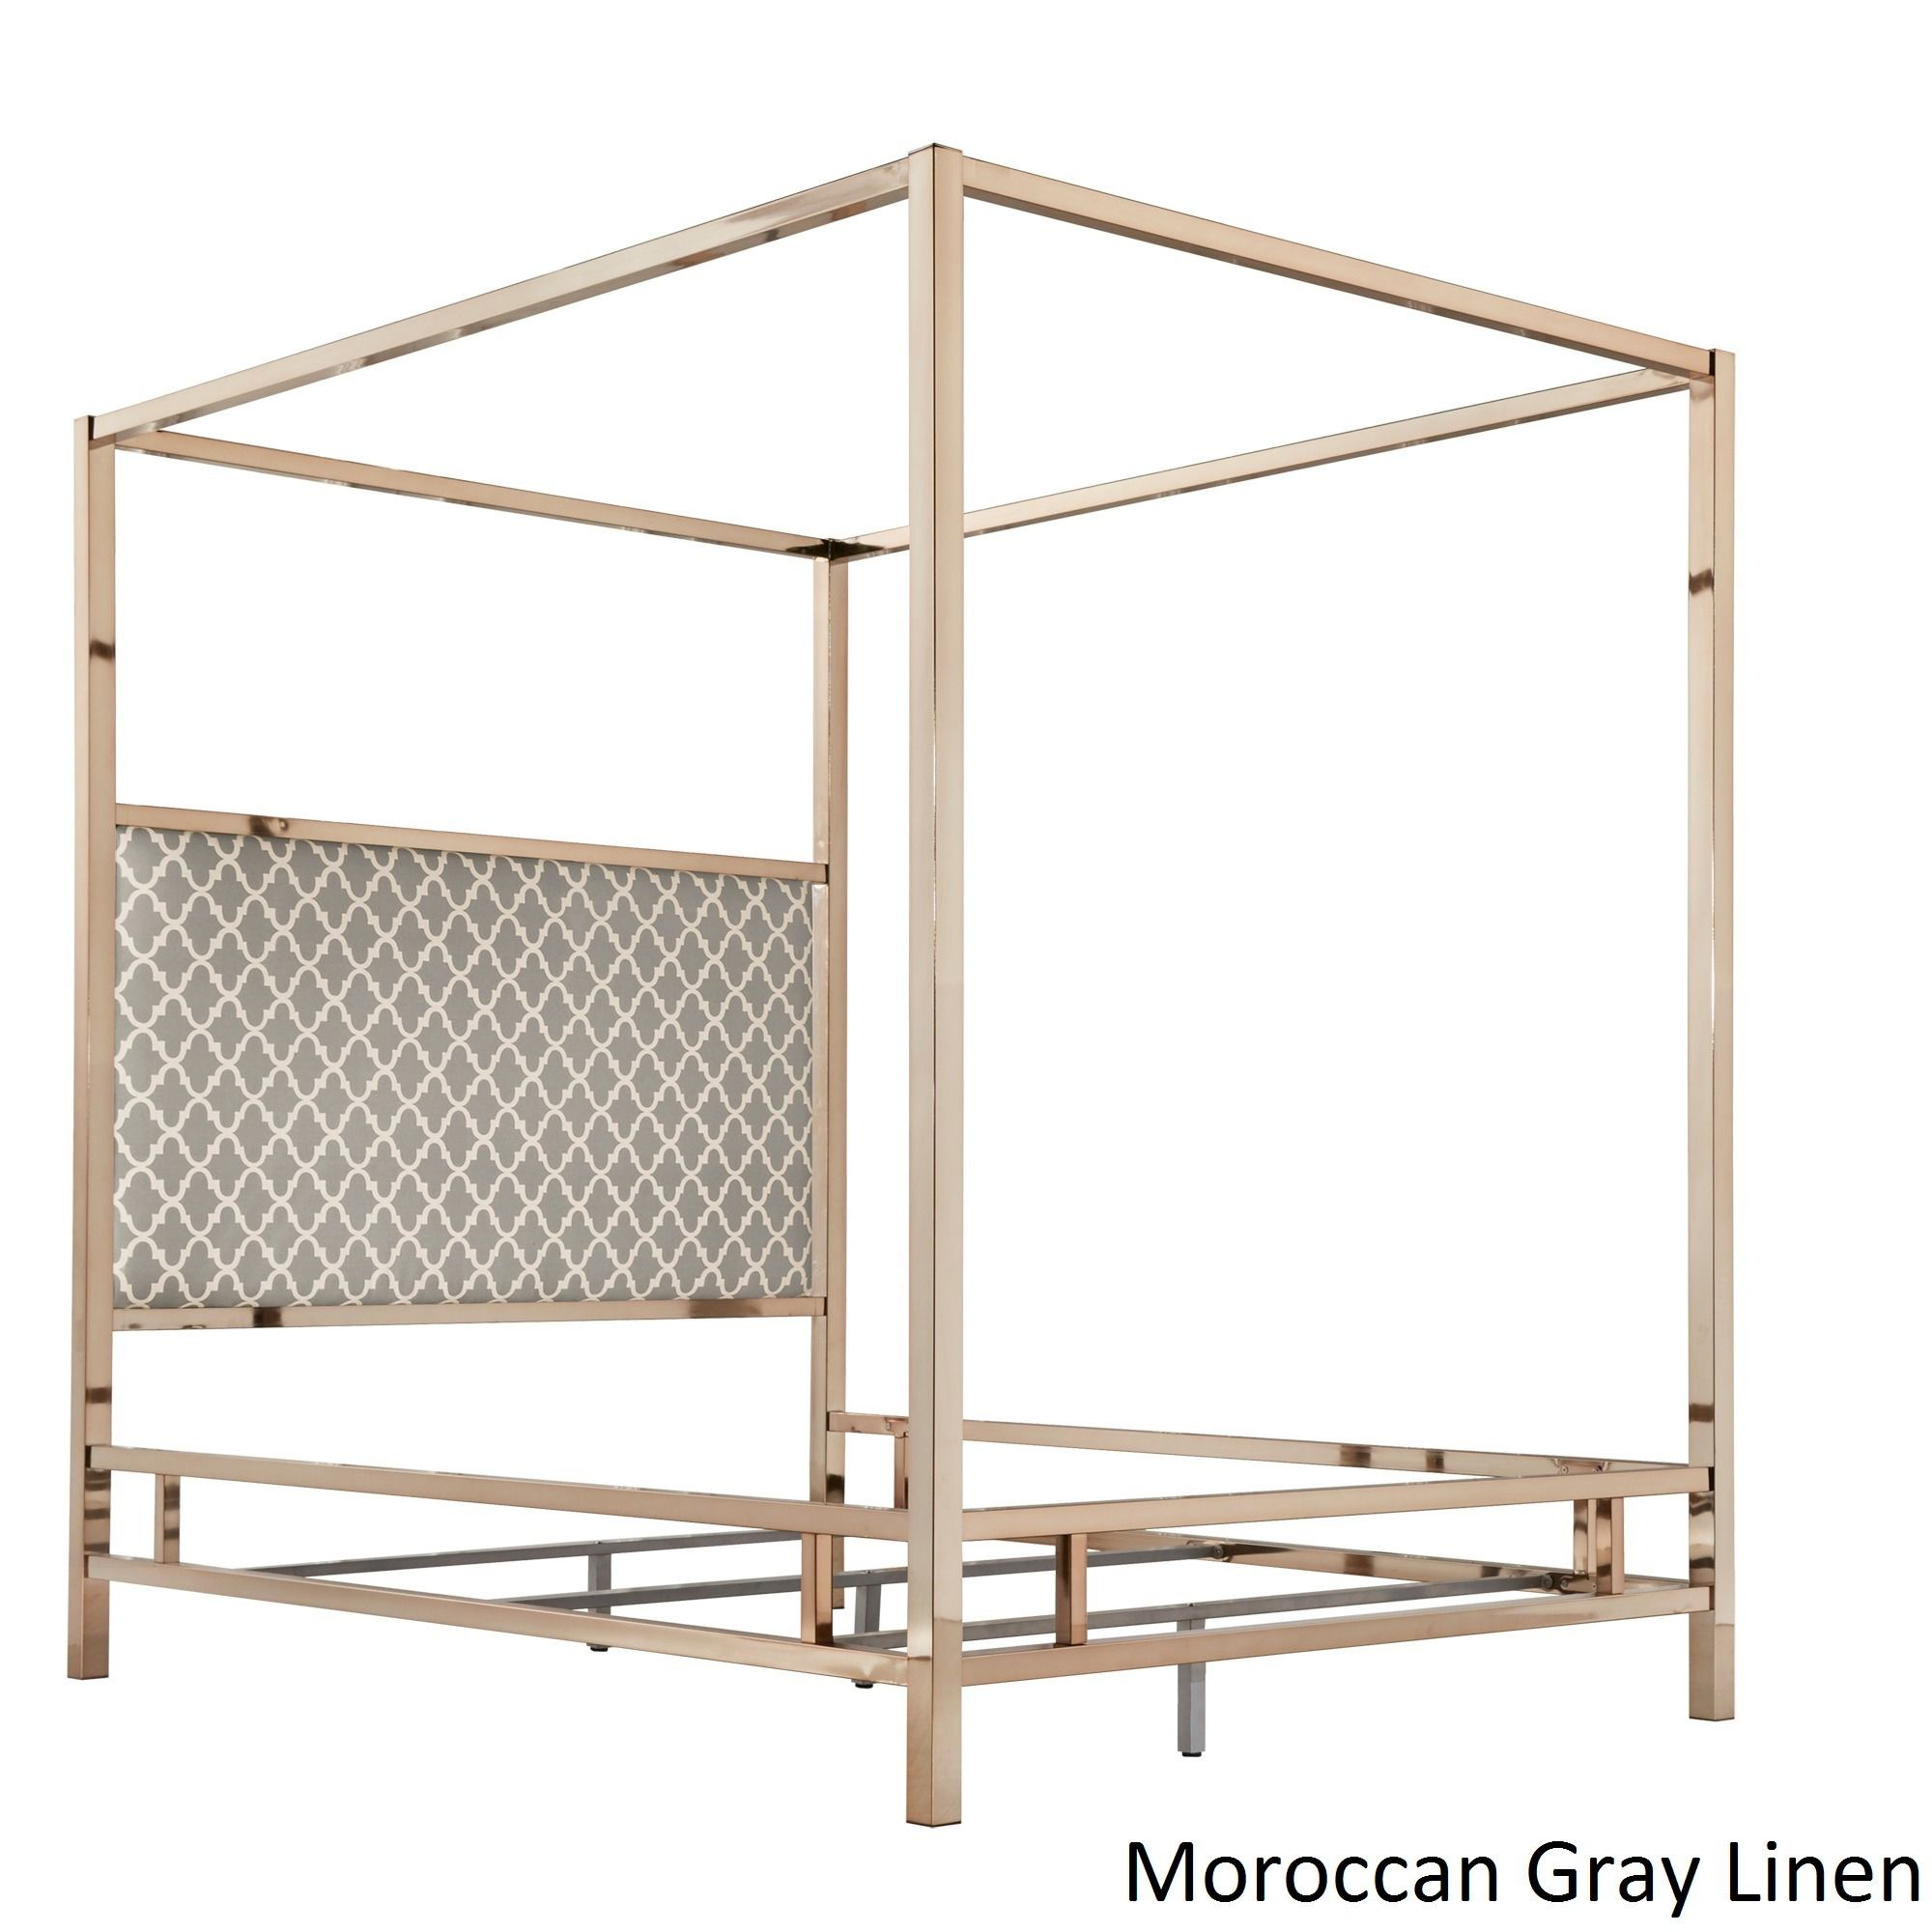 Solivita Full-size Canopy Champagne Gold Metal Poster Bed by Inspire Q ( Moroccan Gray